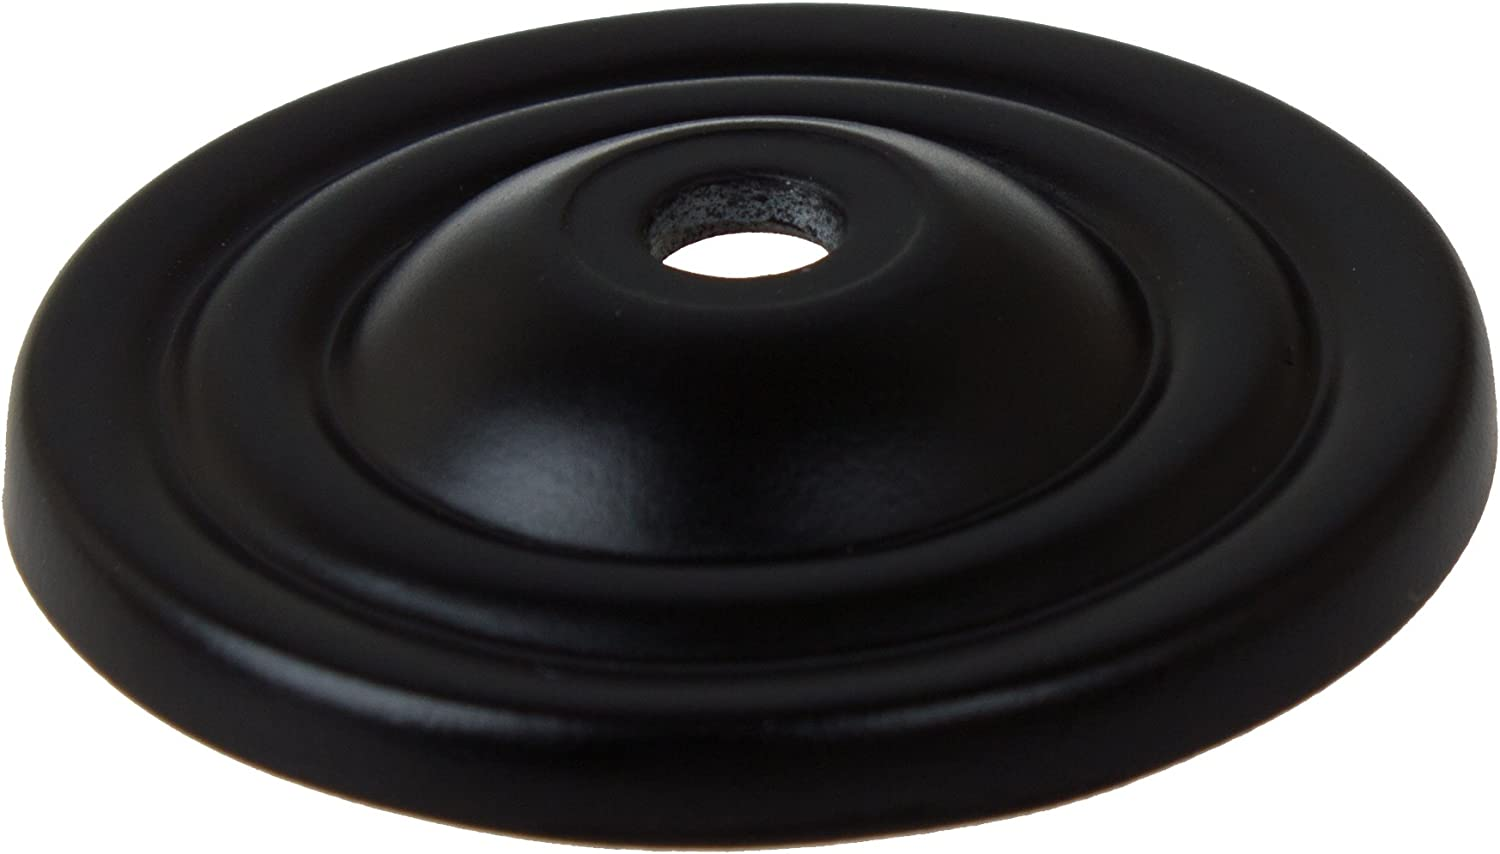 GlideRite Hardware 5061-MB-1 Type Thin Rounded Ring Cabinet Back Plate 1.5 Matte Black Finish